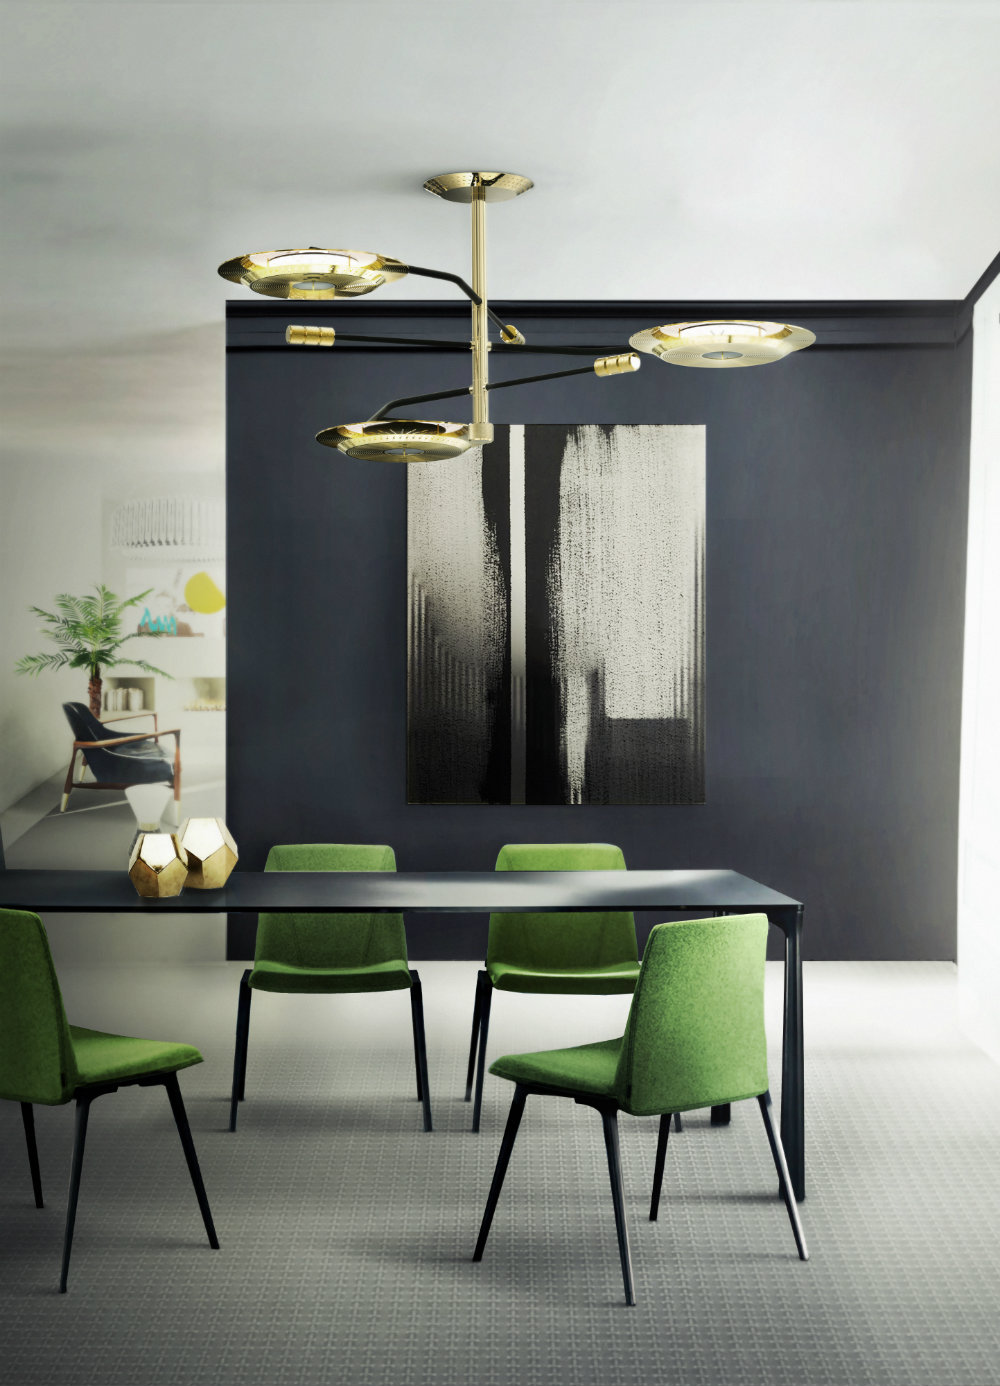 This Pantone Color Looks Beautiful Mixed With Golden Shades Or Even Other  Types Of Green. Perfect Paired With A Golden Dining Room Lighting Design,  ...